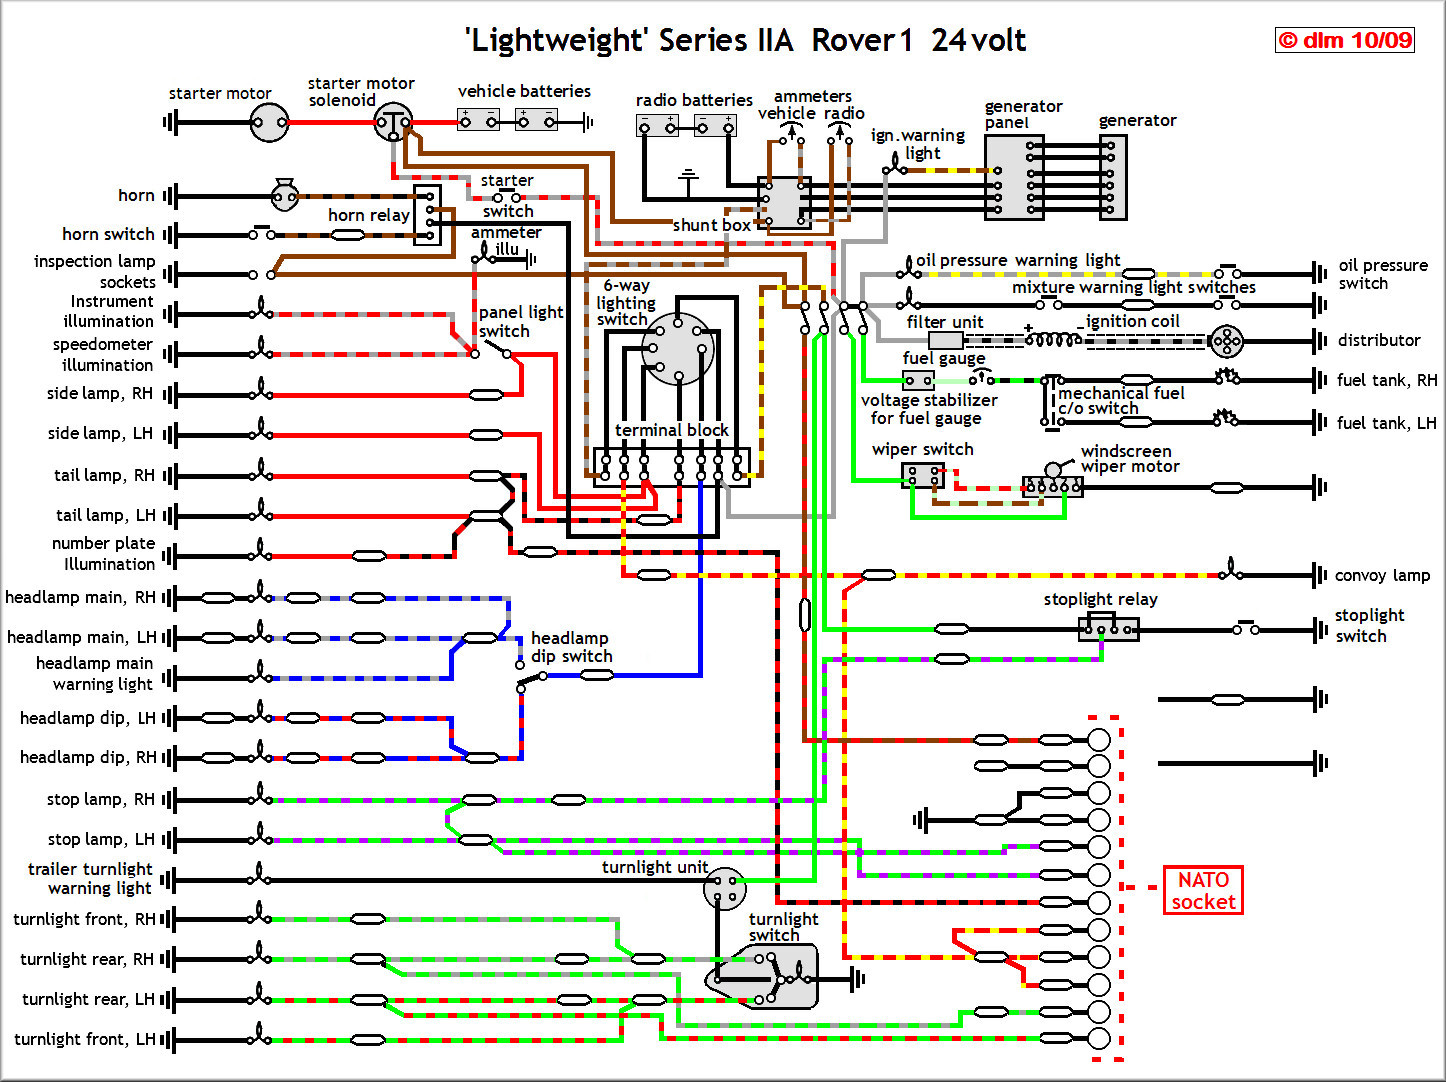 land rover lightweight rh land rover lightweight co uk 2-Way Light Switch Wiring Diagram 3-Way Switch Light Wiring Diagram